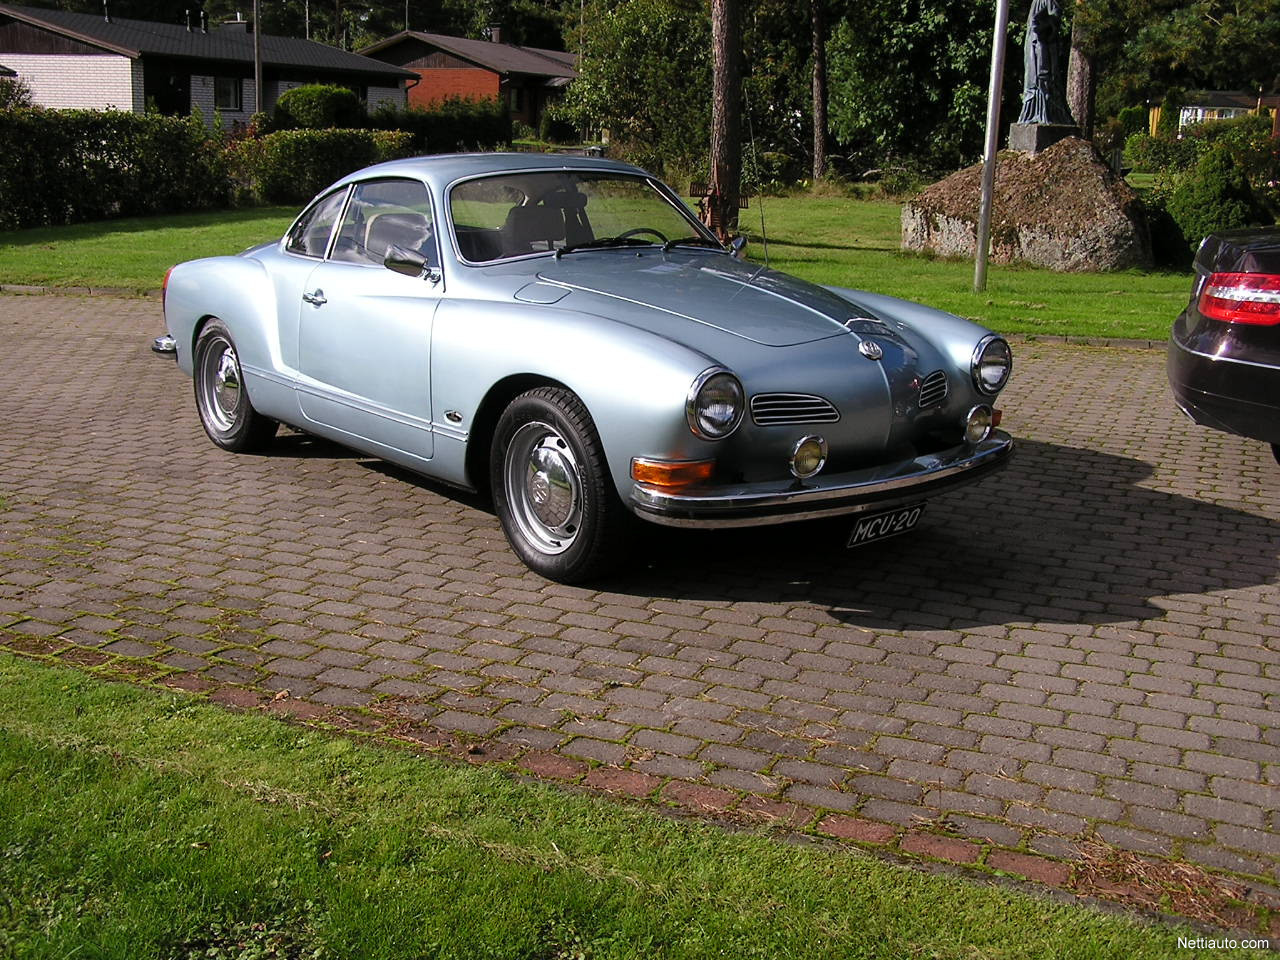 volkswagen karmann ghia karman ghia coup 1973 vaihtoauto nettiauto. Black Bedroom Furniture Sets. Home Design Ideas